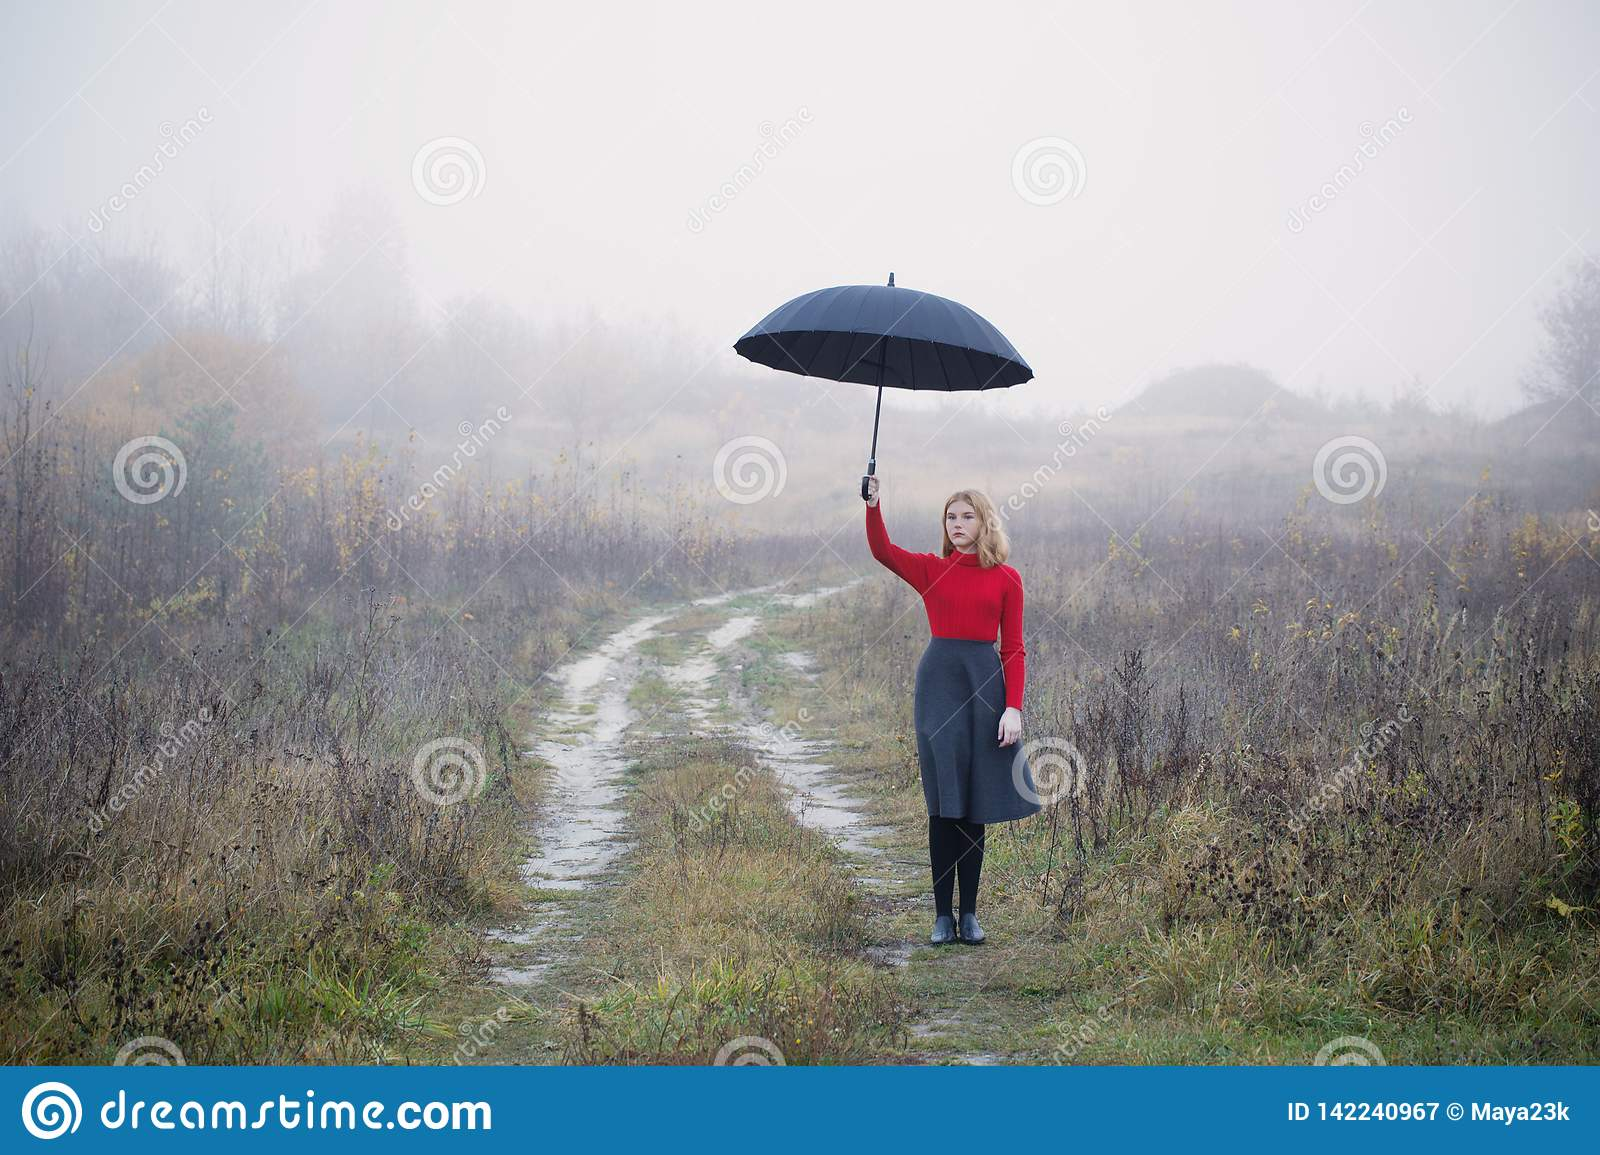 girl with umbrella in autumn field